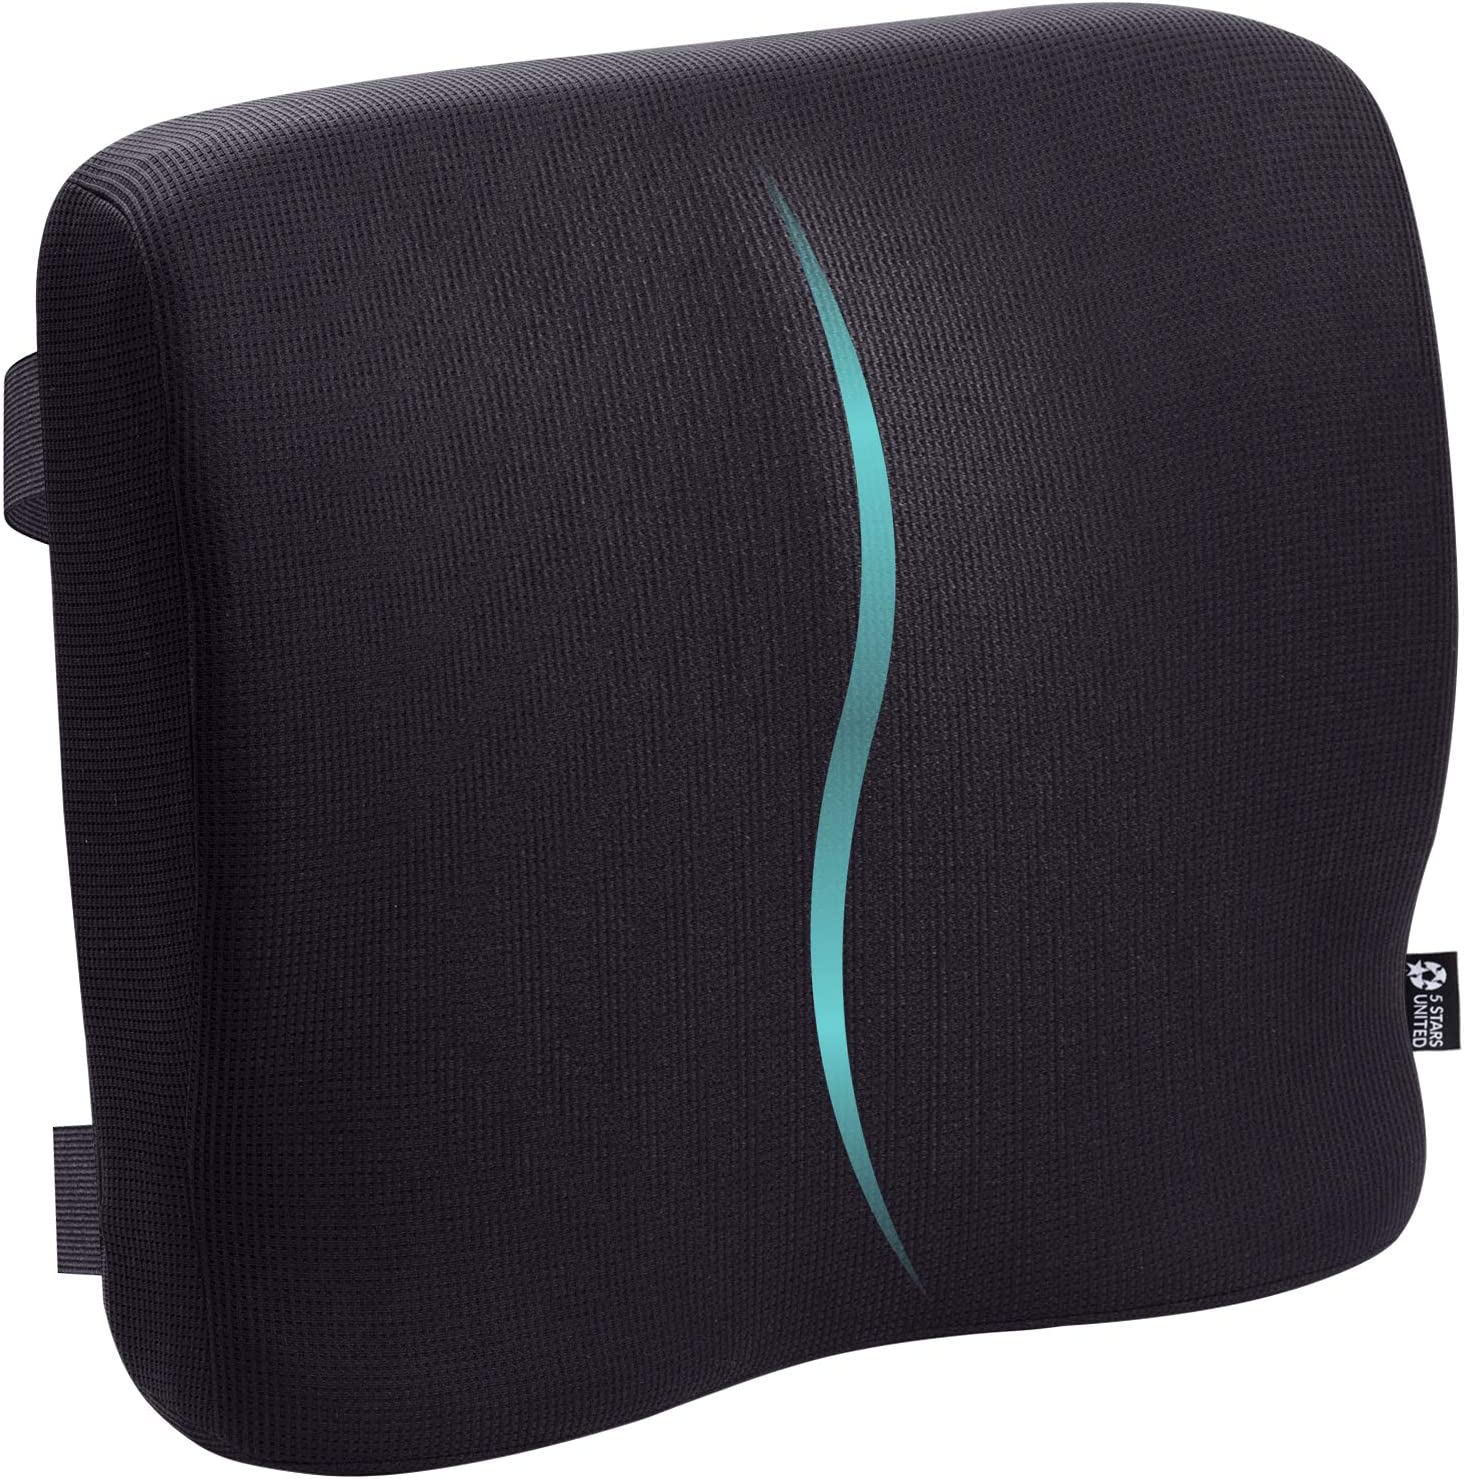 "Back Lumbar Support for Office Chair - 15.7""x3.2"" Large Pillow for Lower Back Pain - Full Posture Corrector for Car, Wheelchair, Computer and Desk Chairs - 100% Memory Foam Orthopedic Seat Cushion 81PXsqyq7BL"